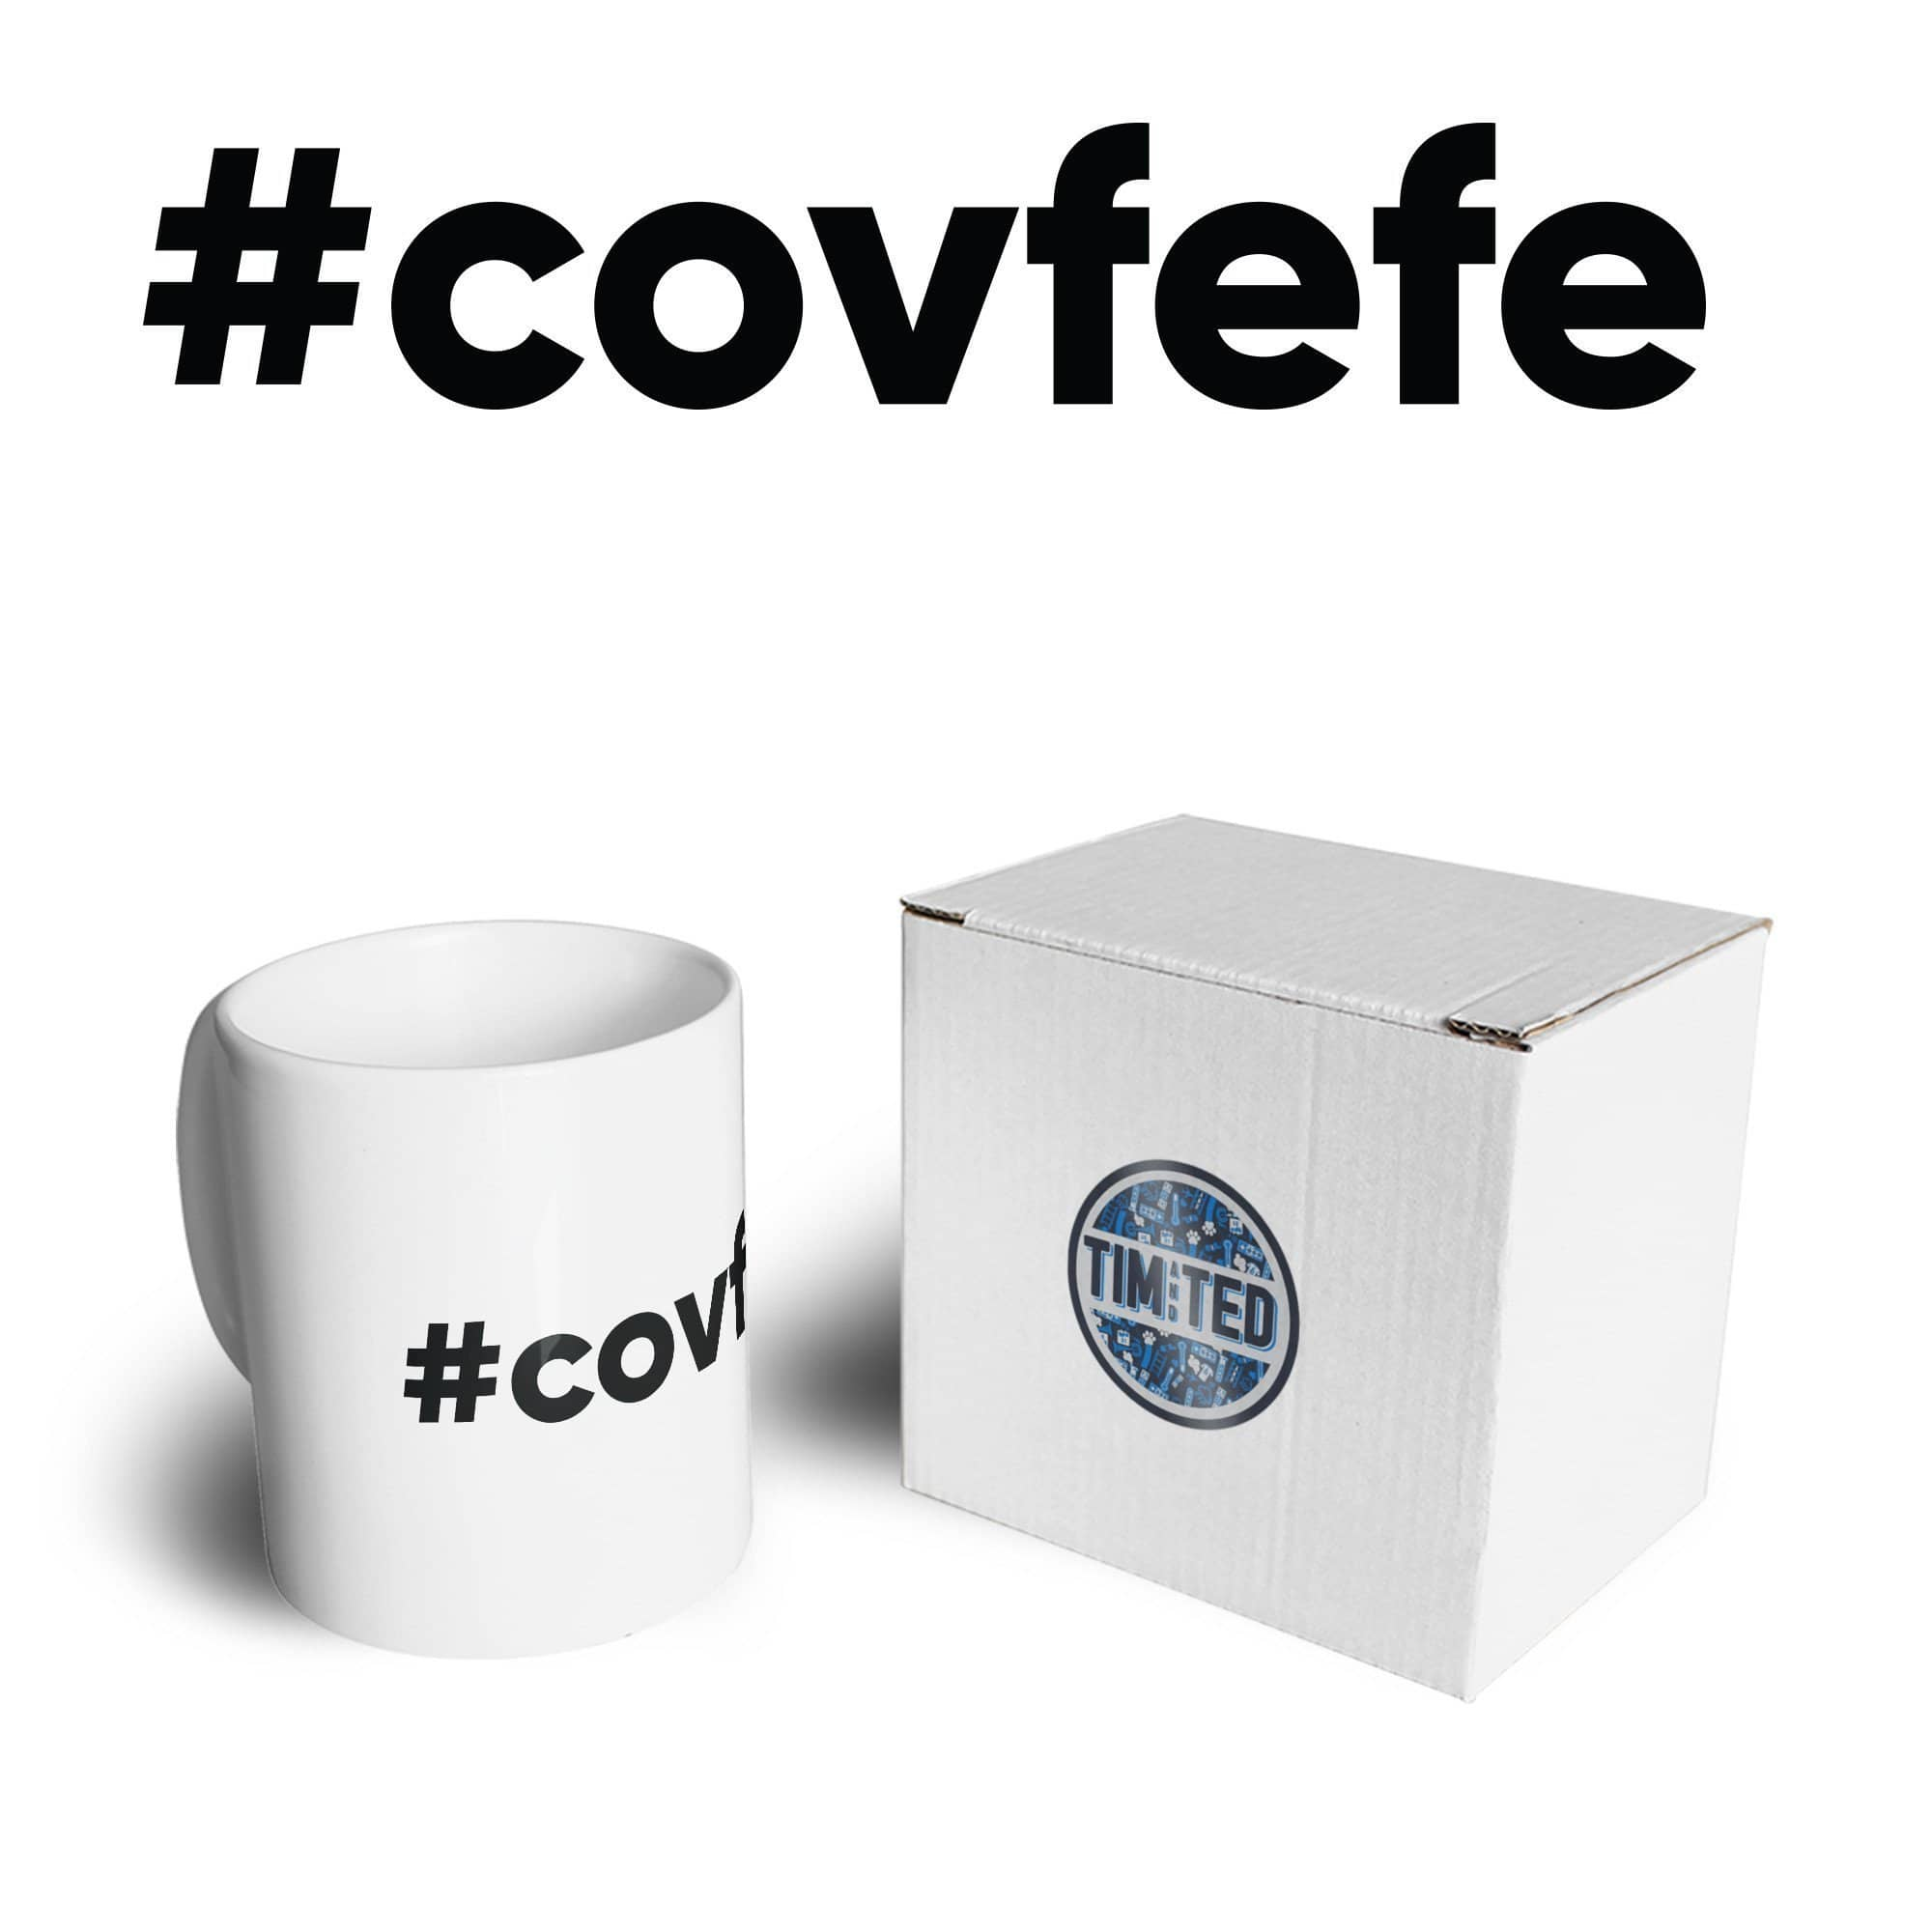 Novelty Donald Trump Mug #covfefe Joke Tweet Meme Coffee Tea Cup